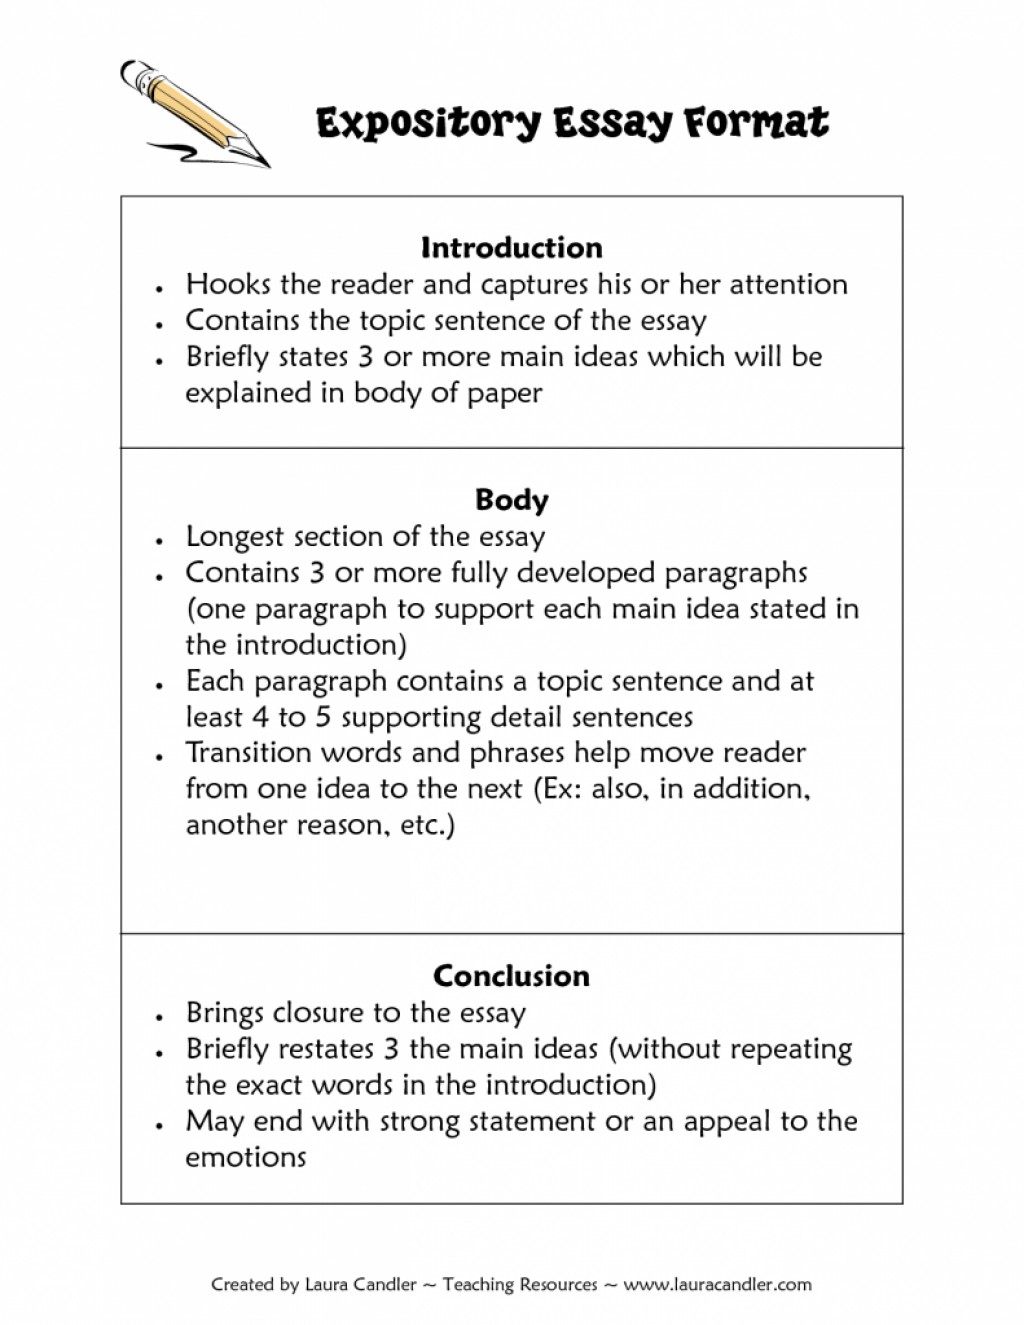 014 Expository Essay Outline Example Surprising Sample Template Middle School Large